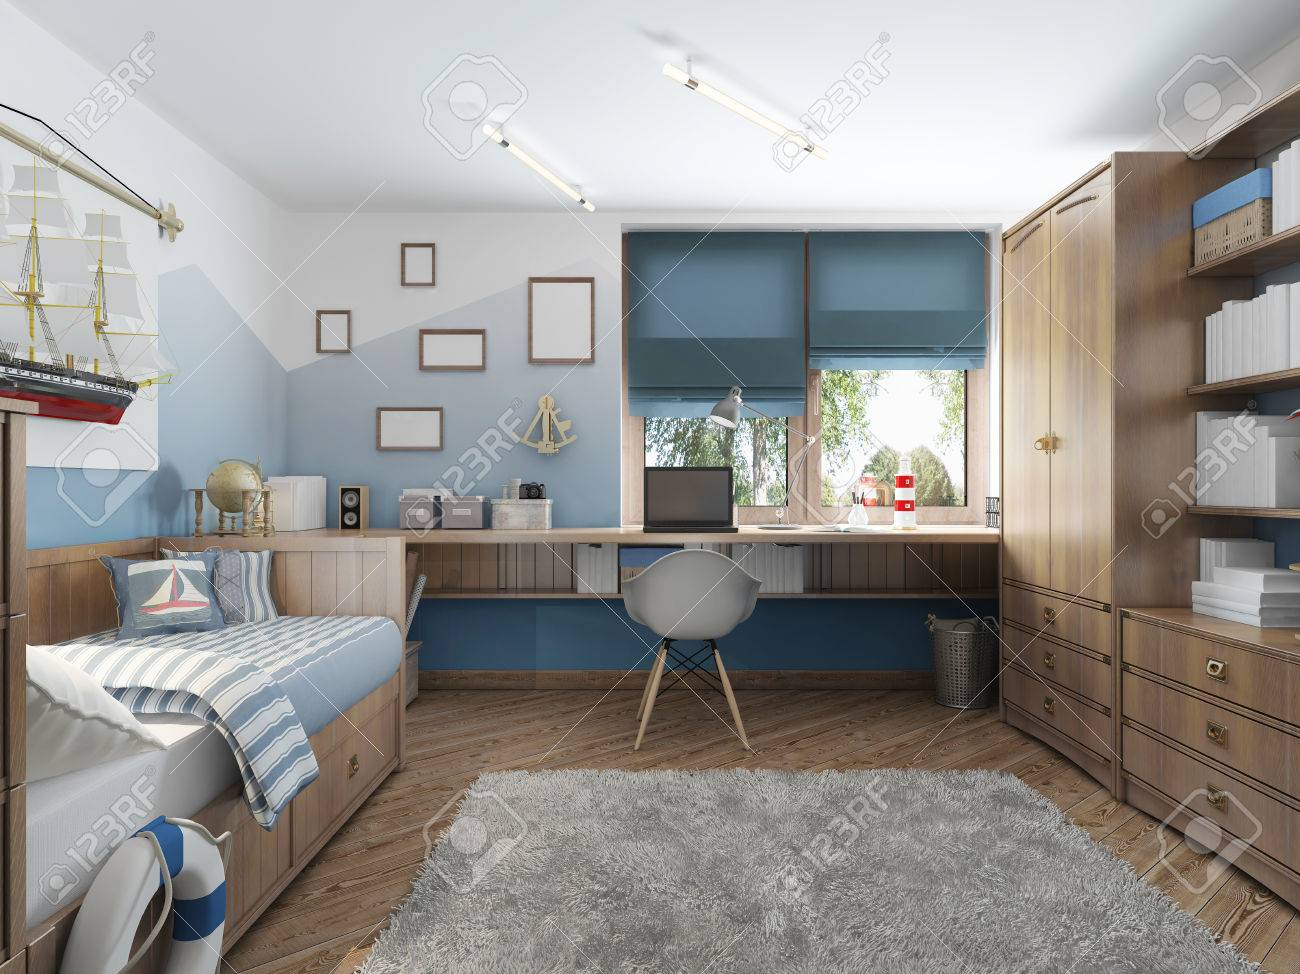 Modern Childrens Room For A Teenager In A Nautical Style With